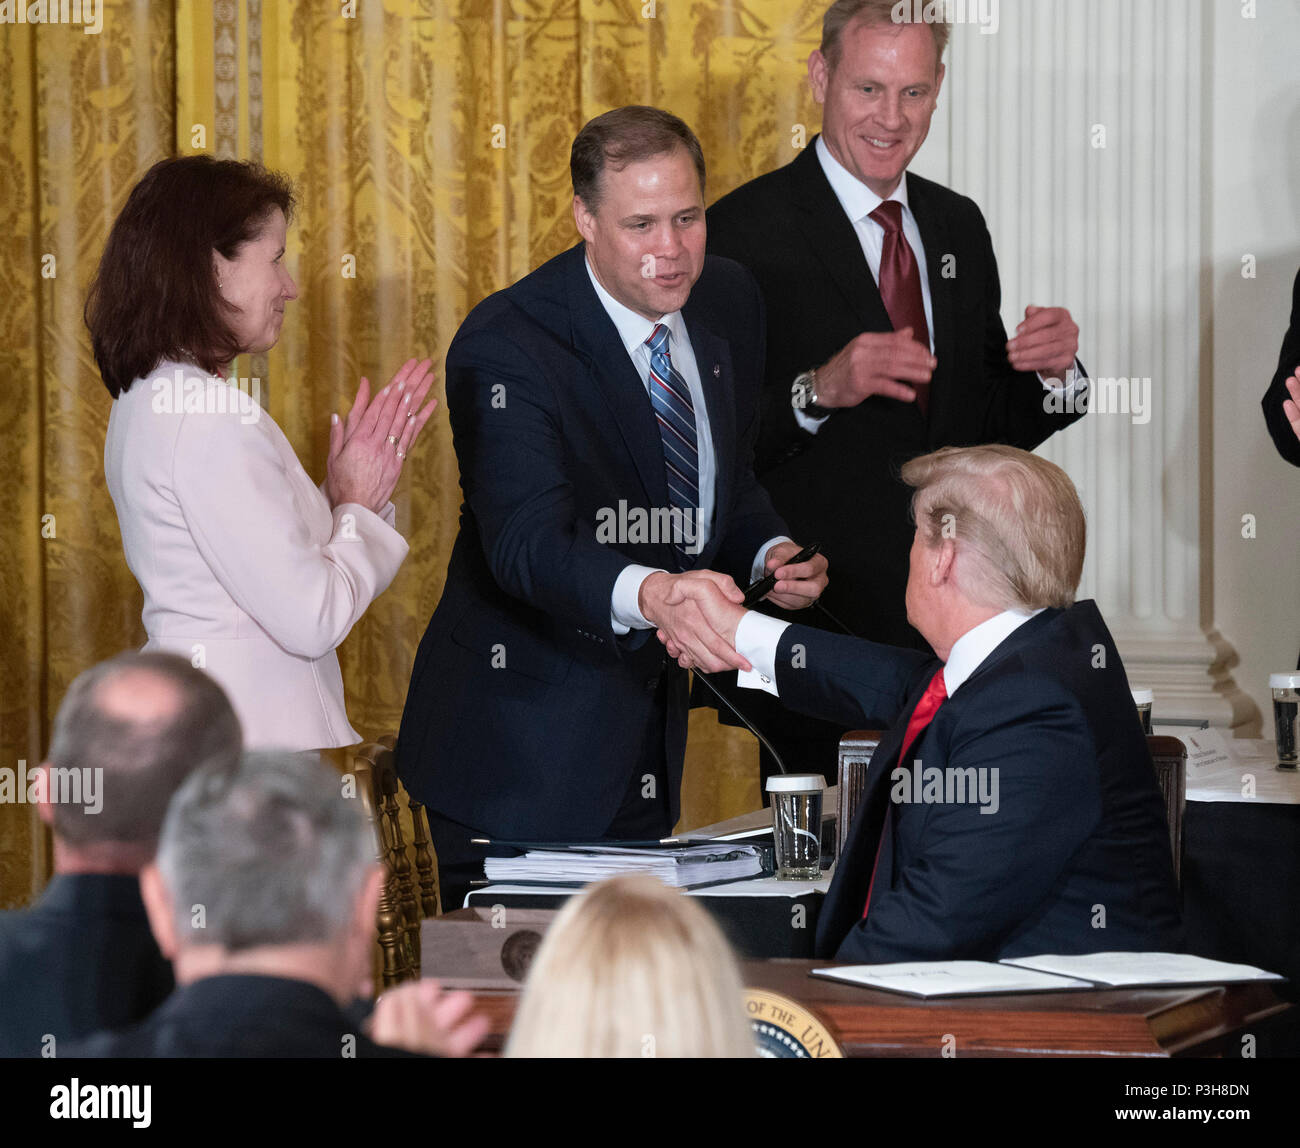 United States President Donald J. Trump hands off the pen used to sign Space Policy Directive 3 to Jim Bridenstine, administrator of the during a meeting with the National Space Council at The White House in Washington, DC, June 18, 2018. The directive addresses issues including monitoring of objects in orbit, providing that information to spacecraft operators to avoid collisions, and to limit the growth of orbital debris. Chris Kleponis/CNP | usage worldwide - Stock Image